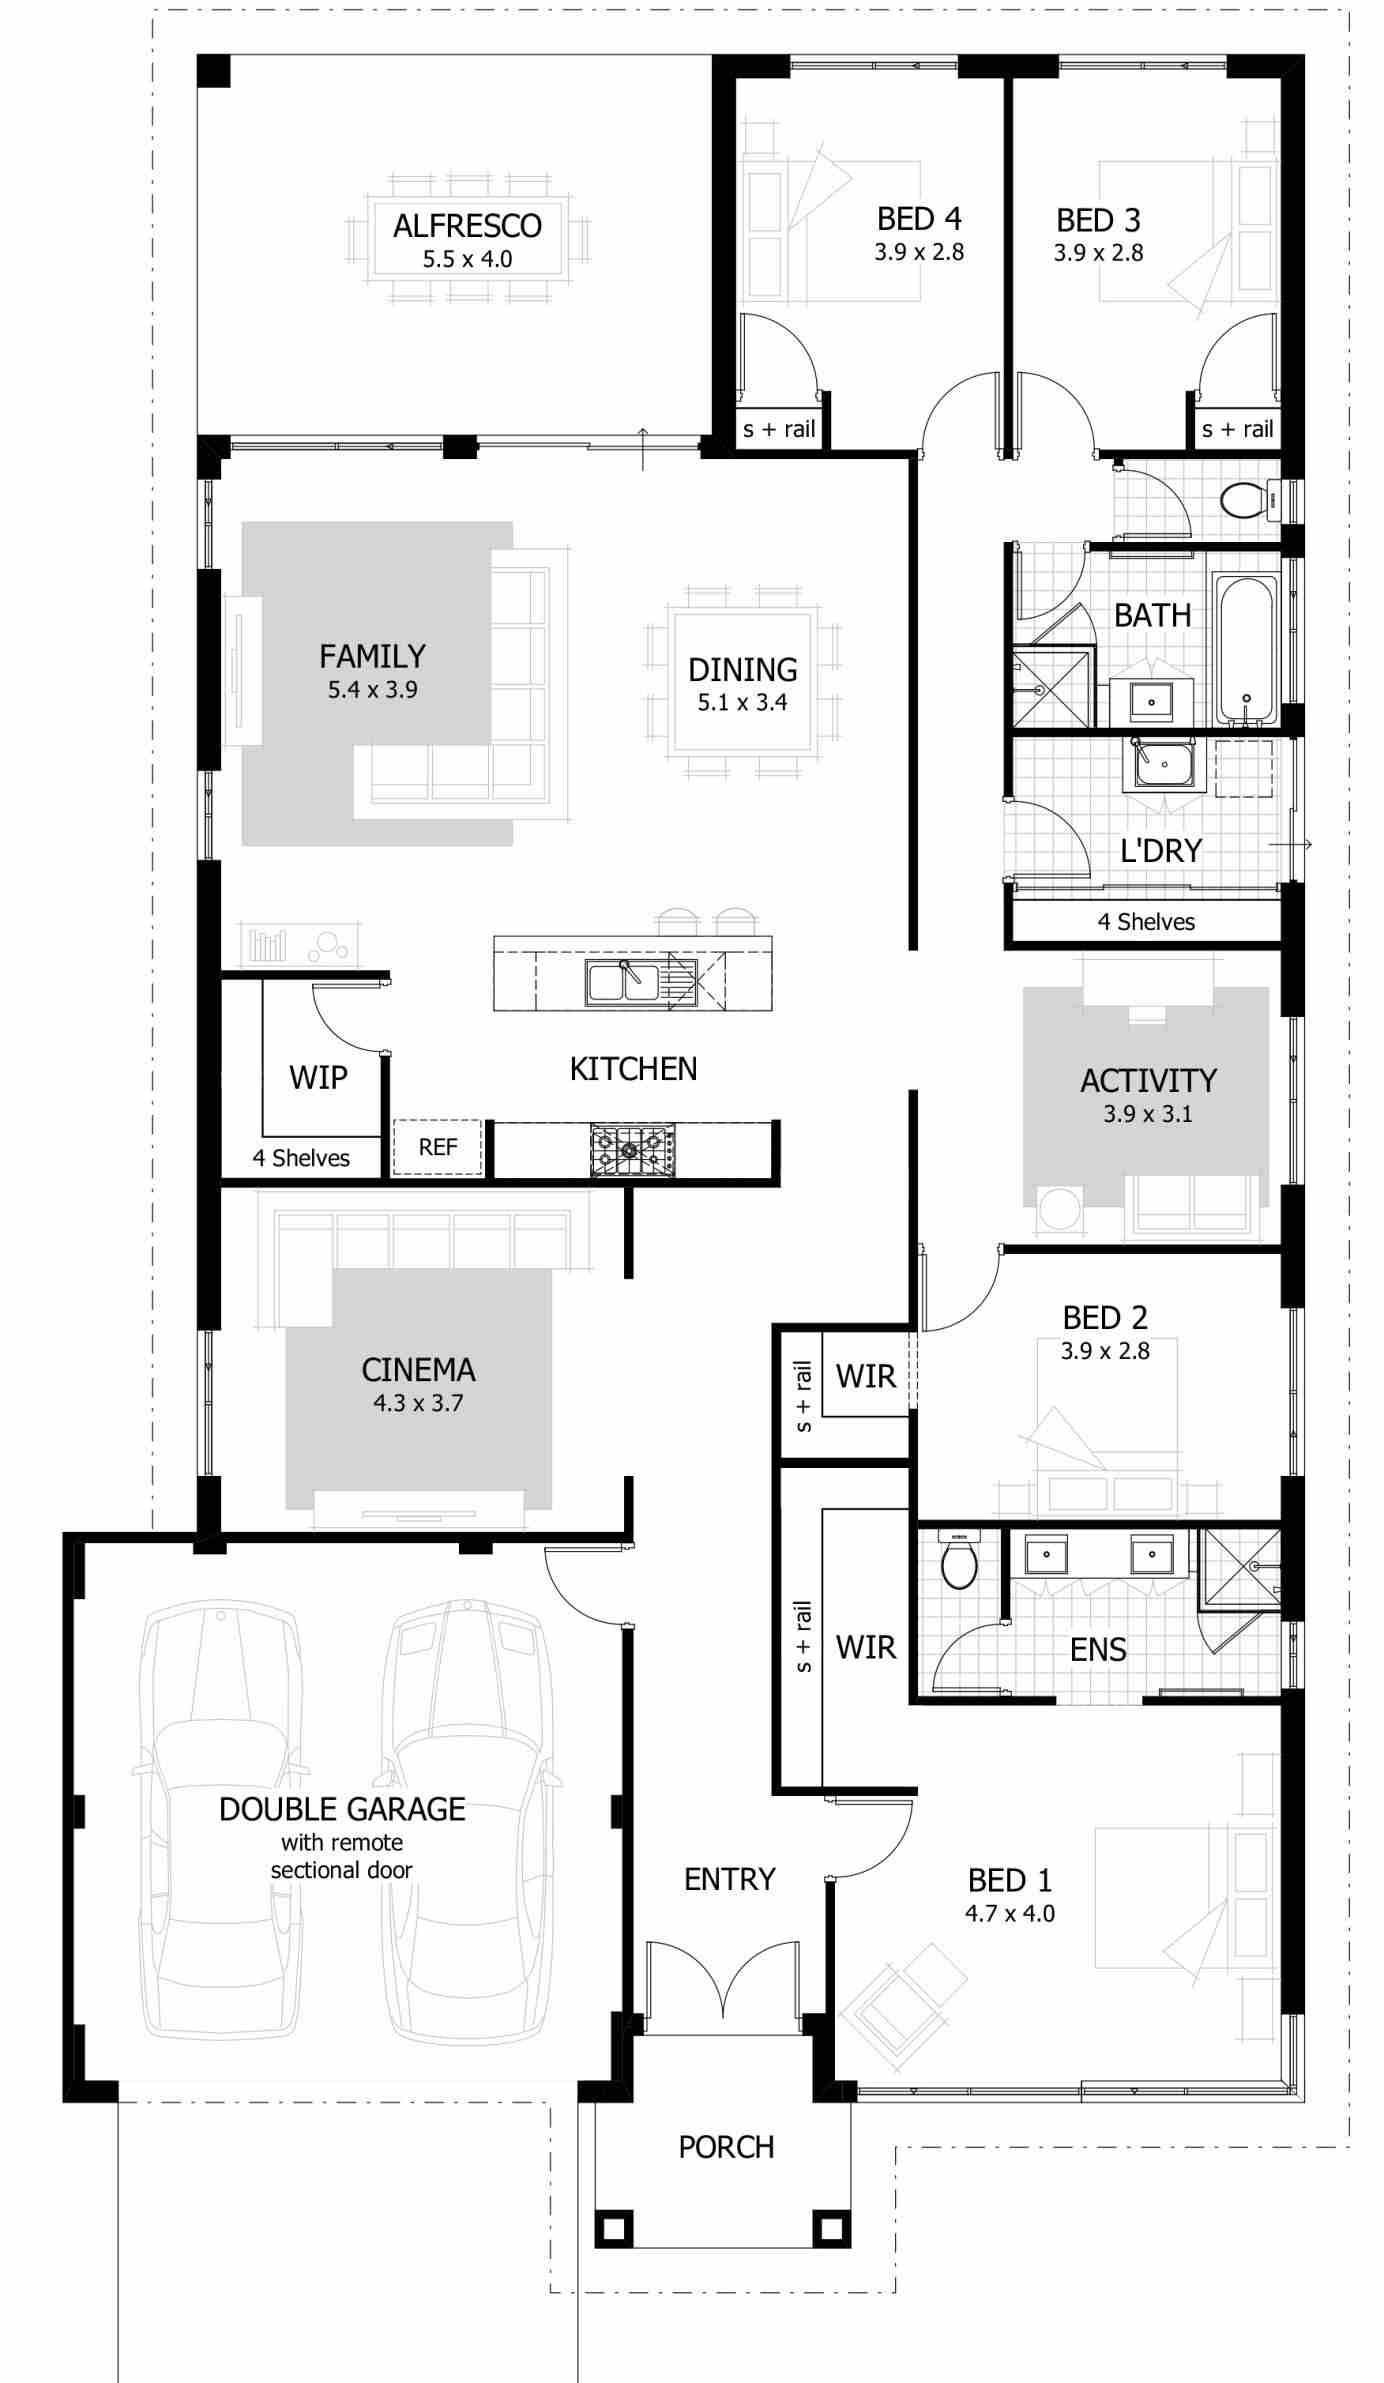 Four Bedroom House Plan 4 Bedroom House Designs 4 Bedroom House Design Kenya Elegant Free P Castle House Plans 4 Bedroom House Plans Four Bedroom House Plans